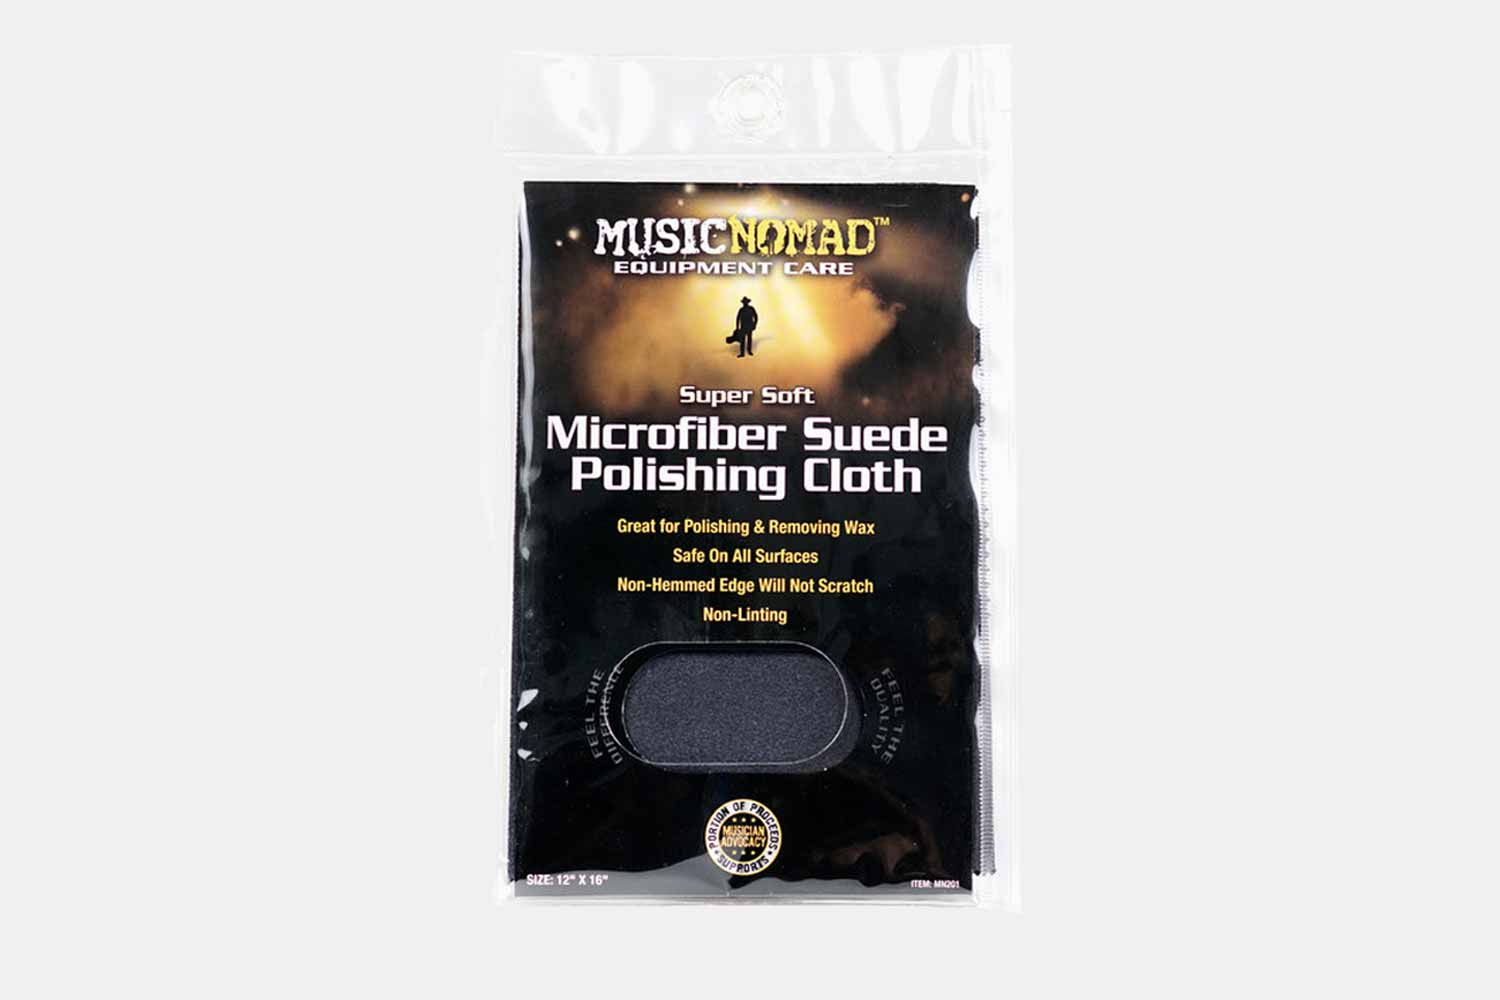 Music Nomad Super Soft Edgeless Microfiber Suede Polishing Cloth - MN201 (5481993928868)